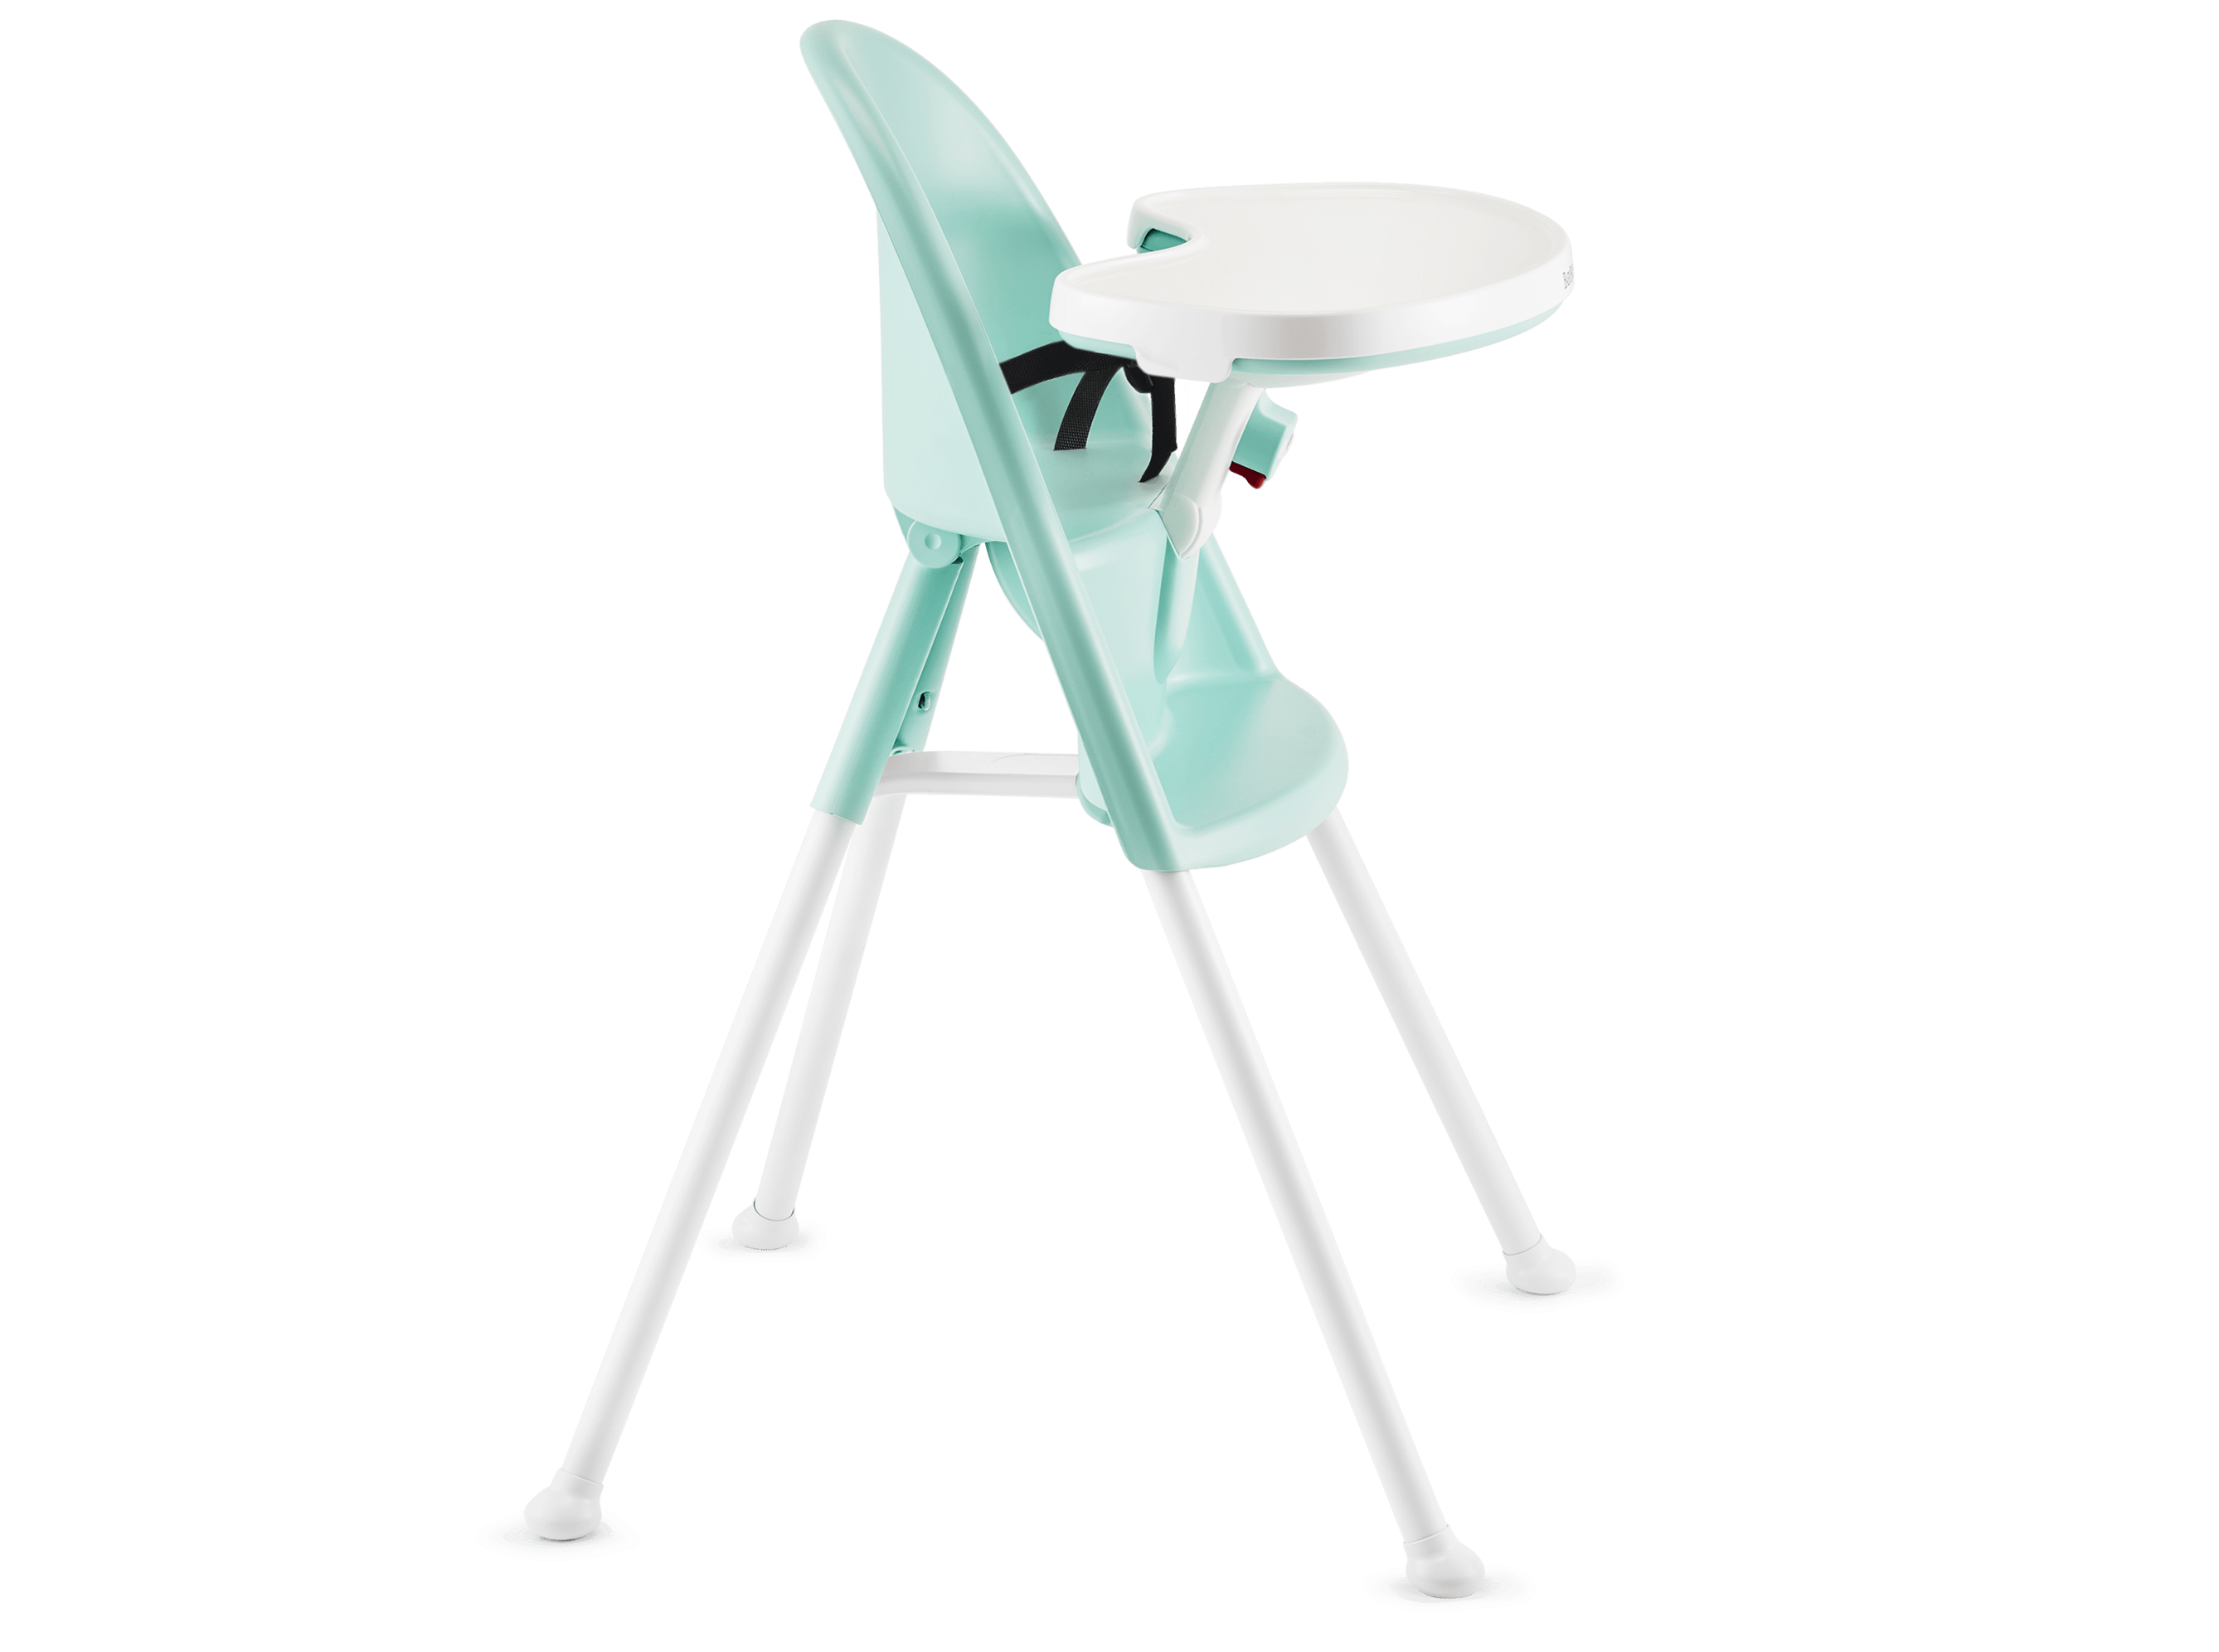 buy baby high chairs hanging with stand infant chair  safe and smart design babybjÖrn